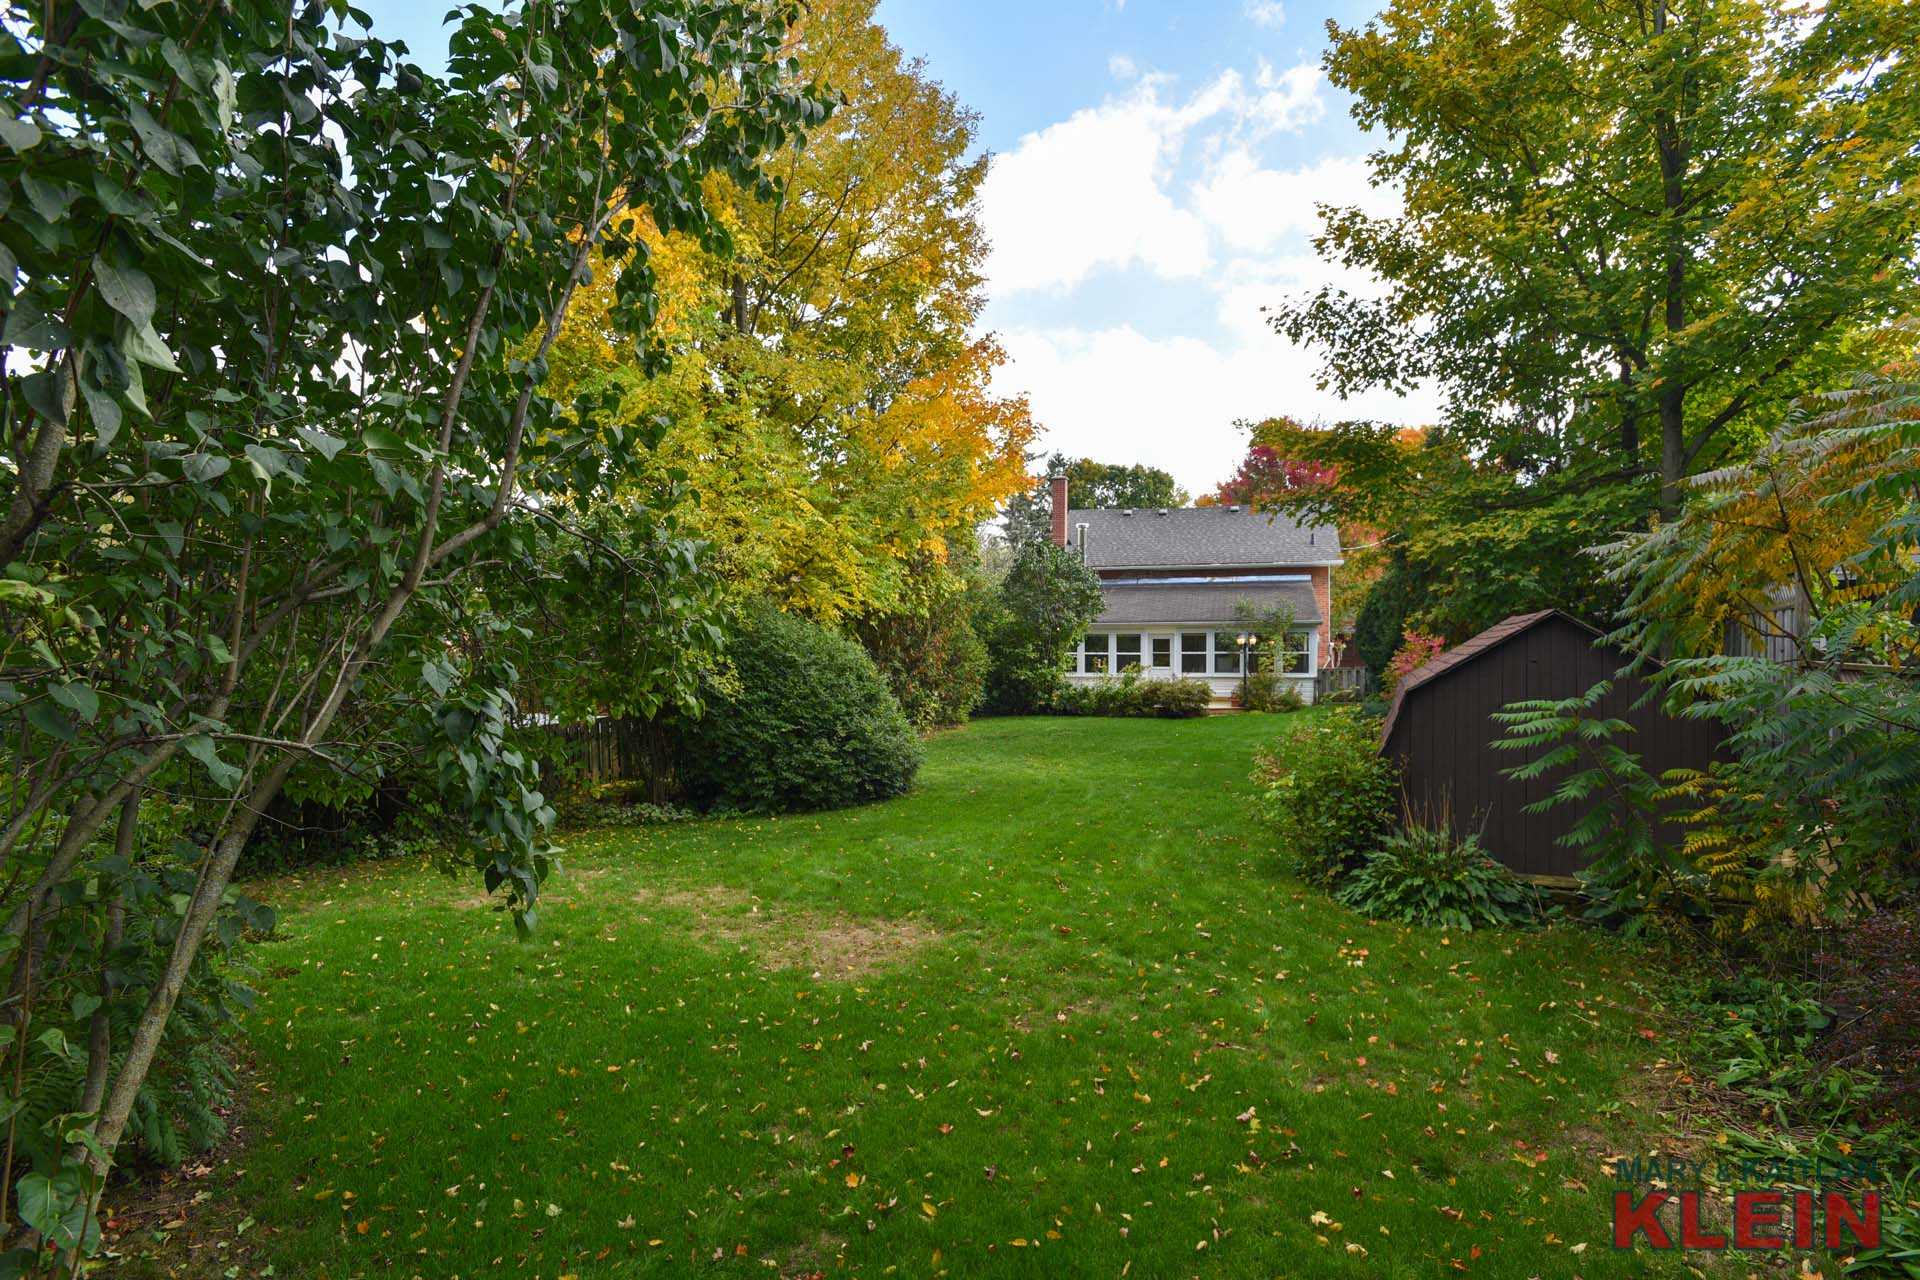 Orangeville homes for sale, 3 bedroom, Century home, character